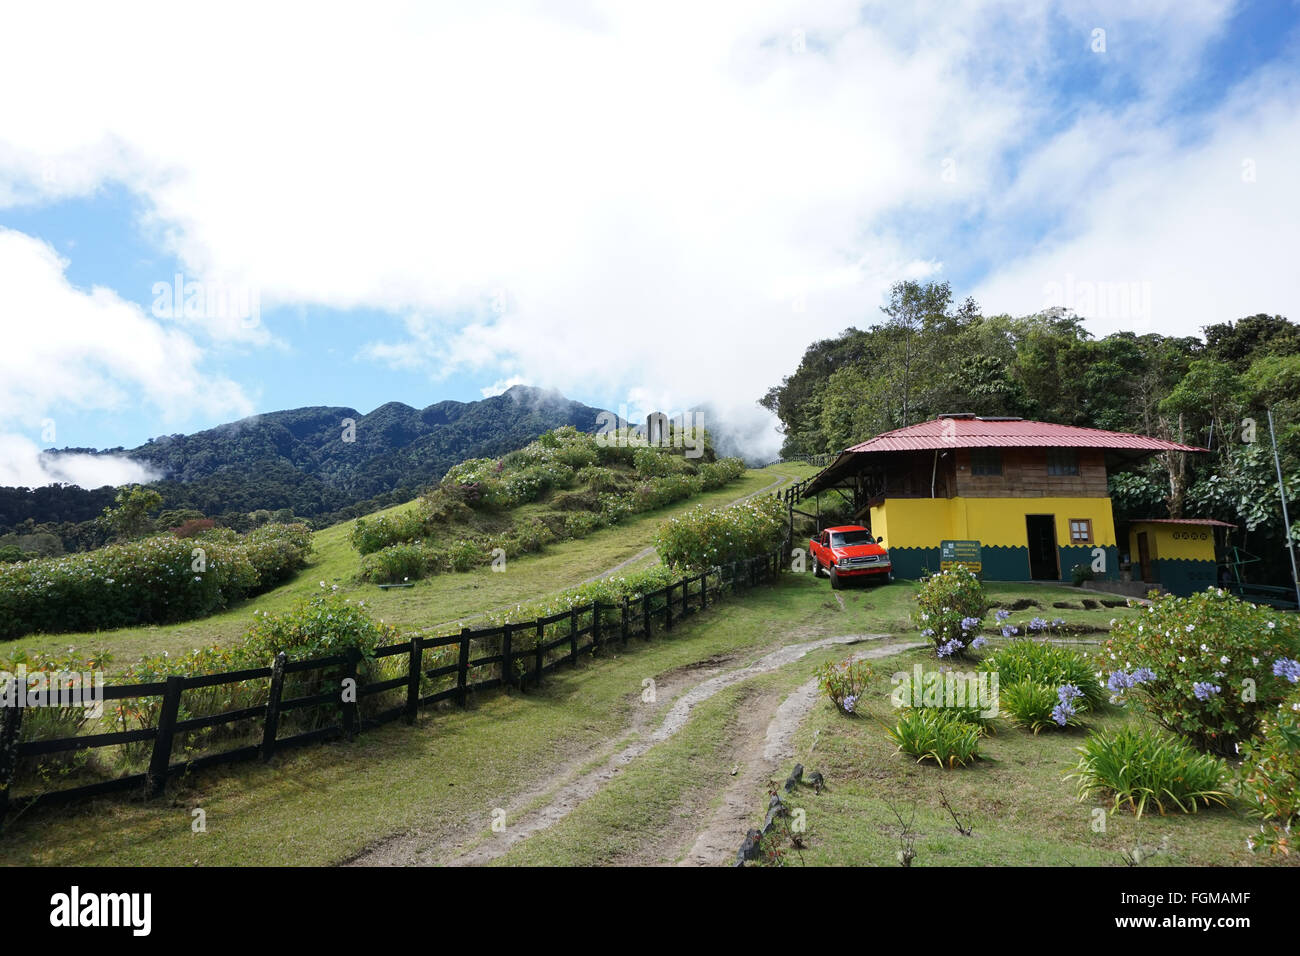 Anam ranger station and landscape view of highlands at Cerro Punta Volcan Baru Chiriqui Panama.Near Boquete - Stock Image